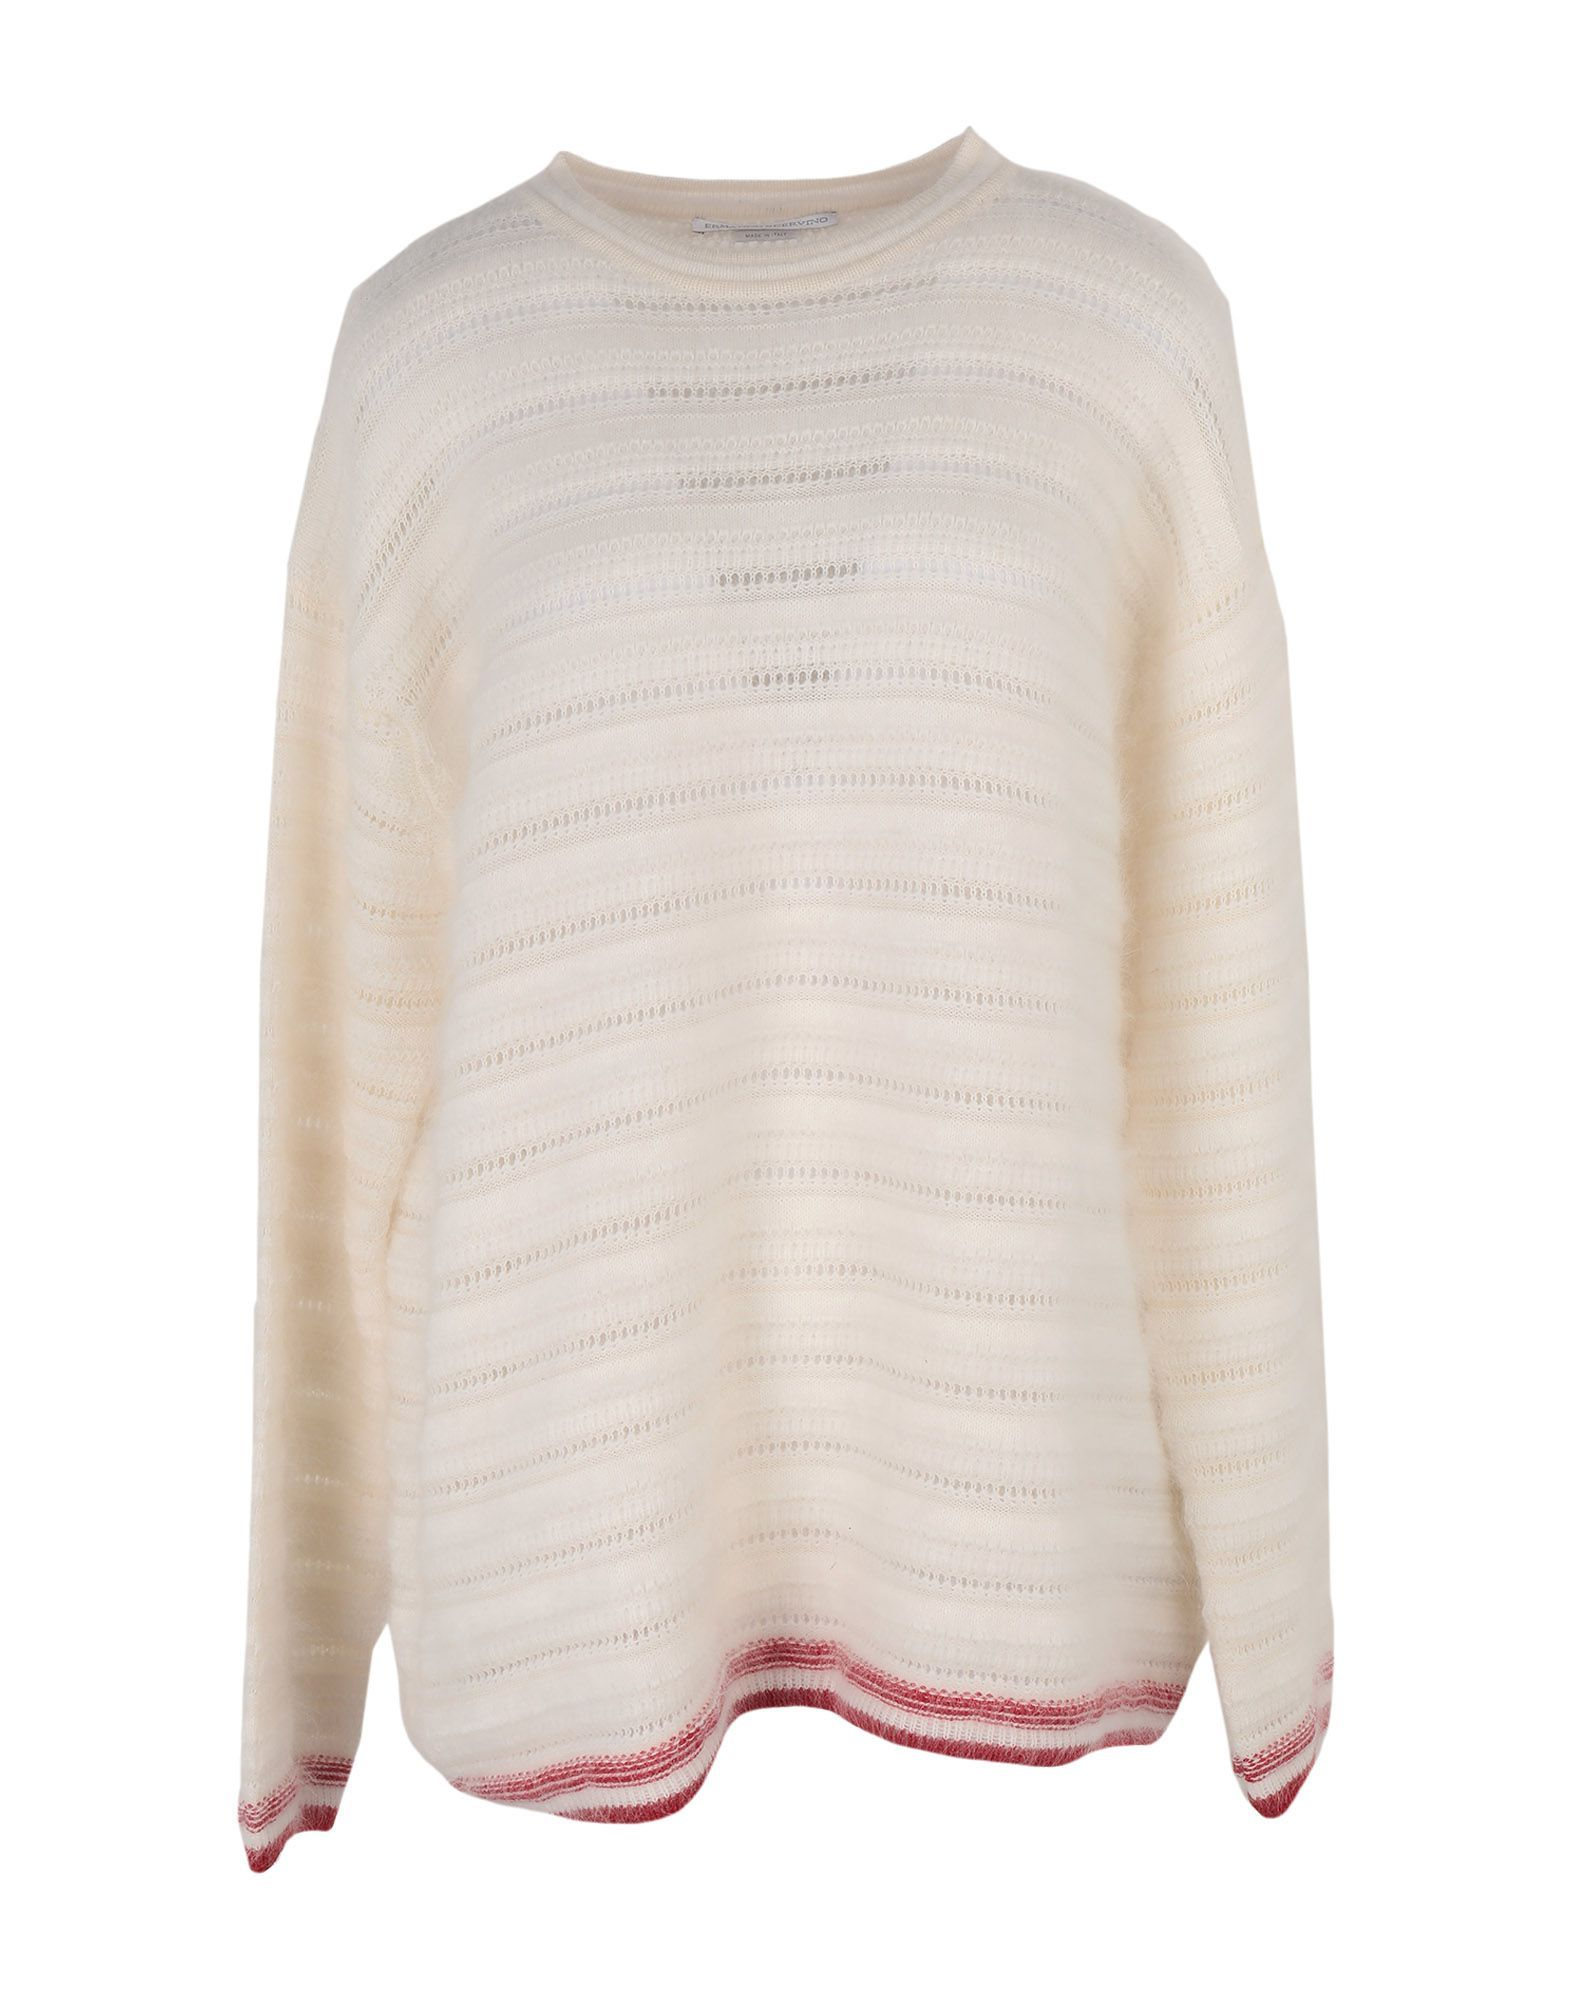 KNITWEAR Ermanno Scervino Ivory Woman Virgin Wool